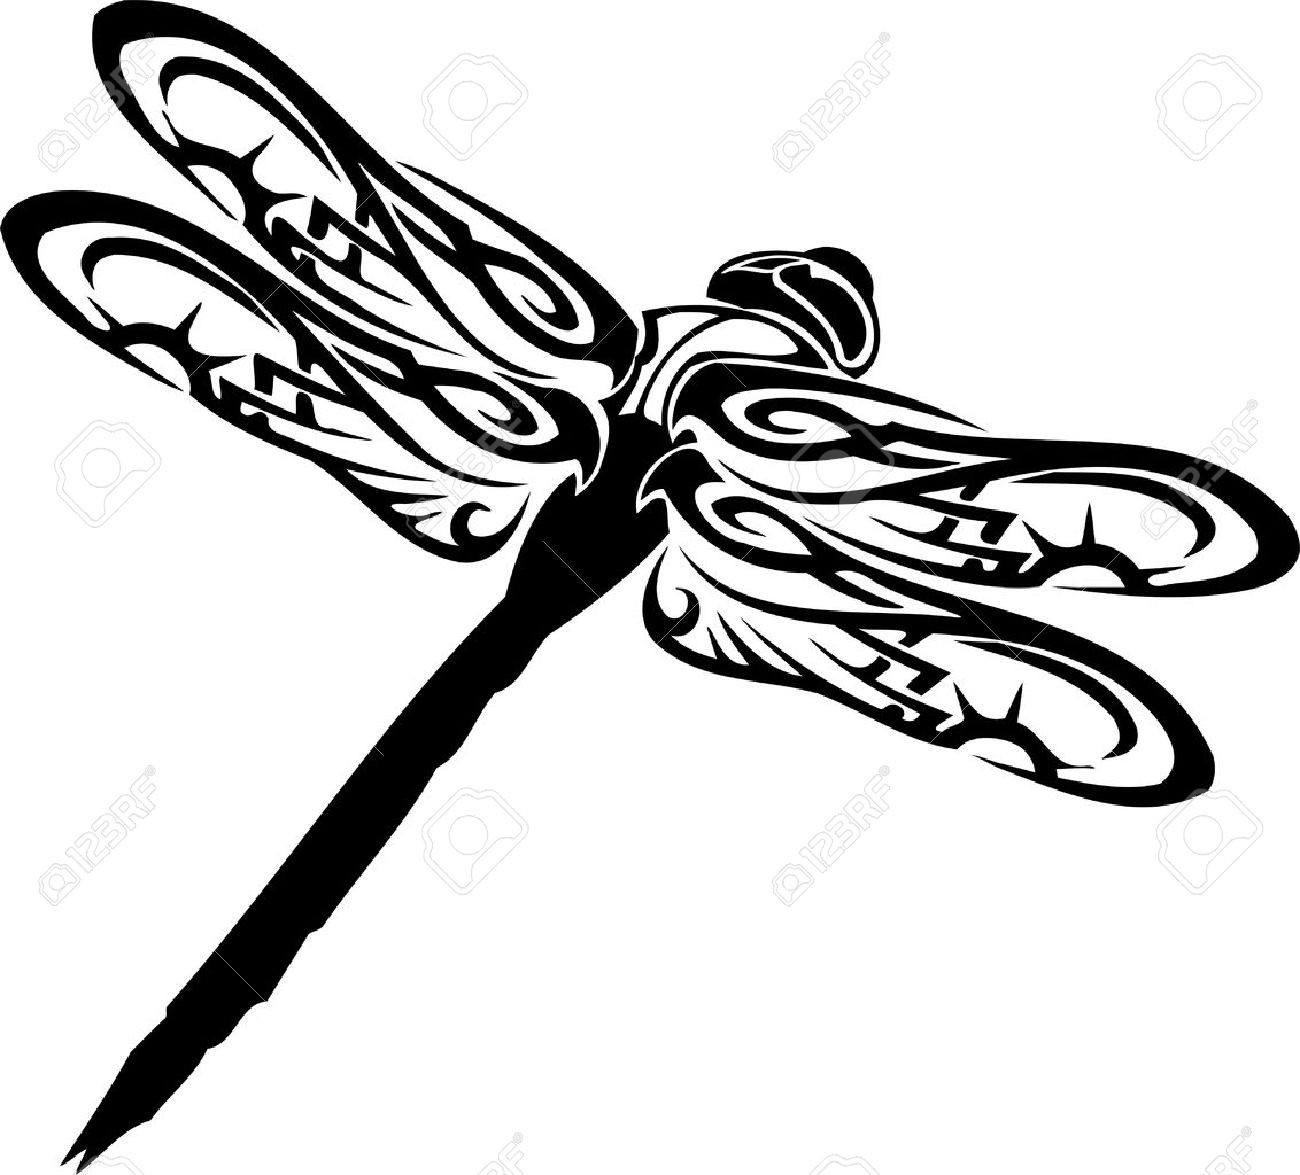 dragonfly vector illustration ready for vinyl cutting royalty free rh 123rf com dragonfly vector free download dragonfly vector format